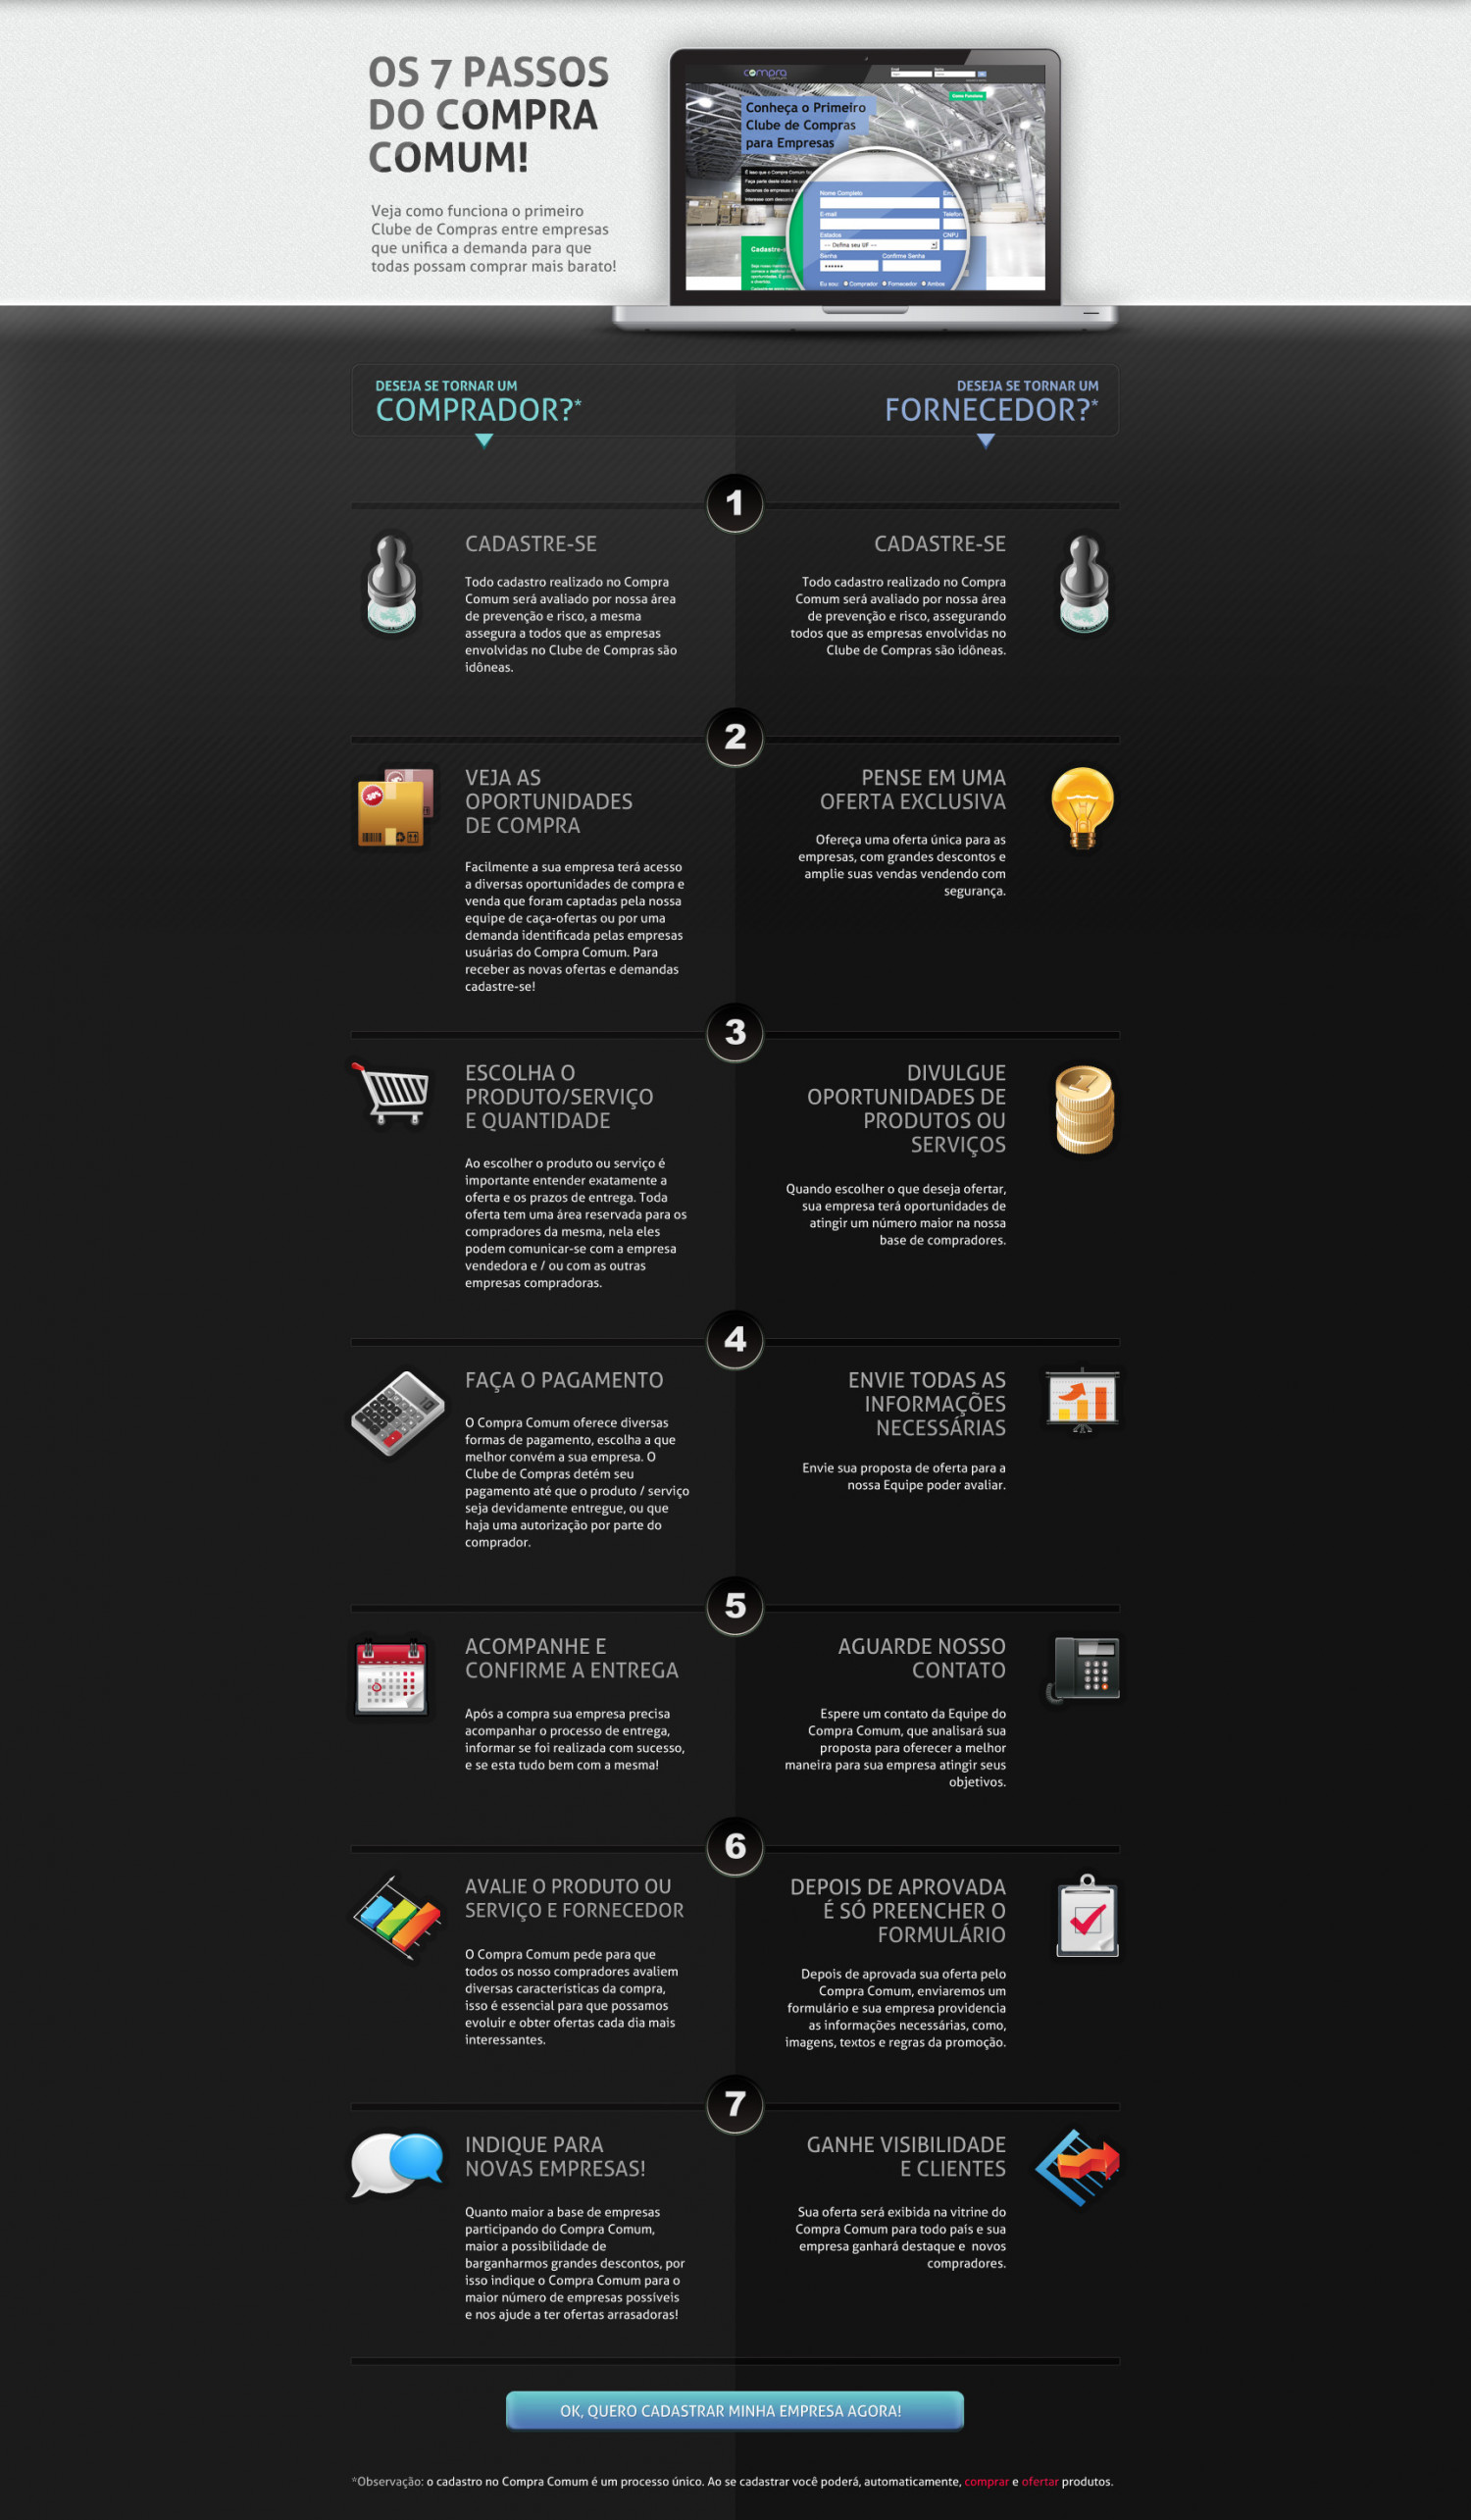 How it Works in 7-Steps Infographic